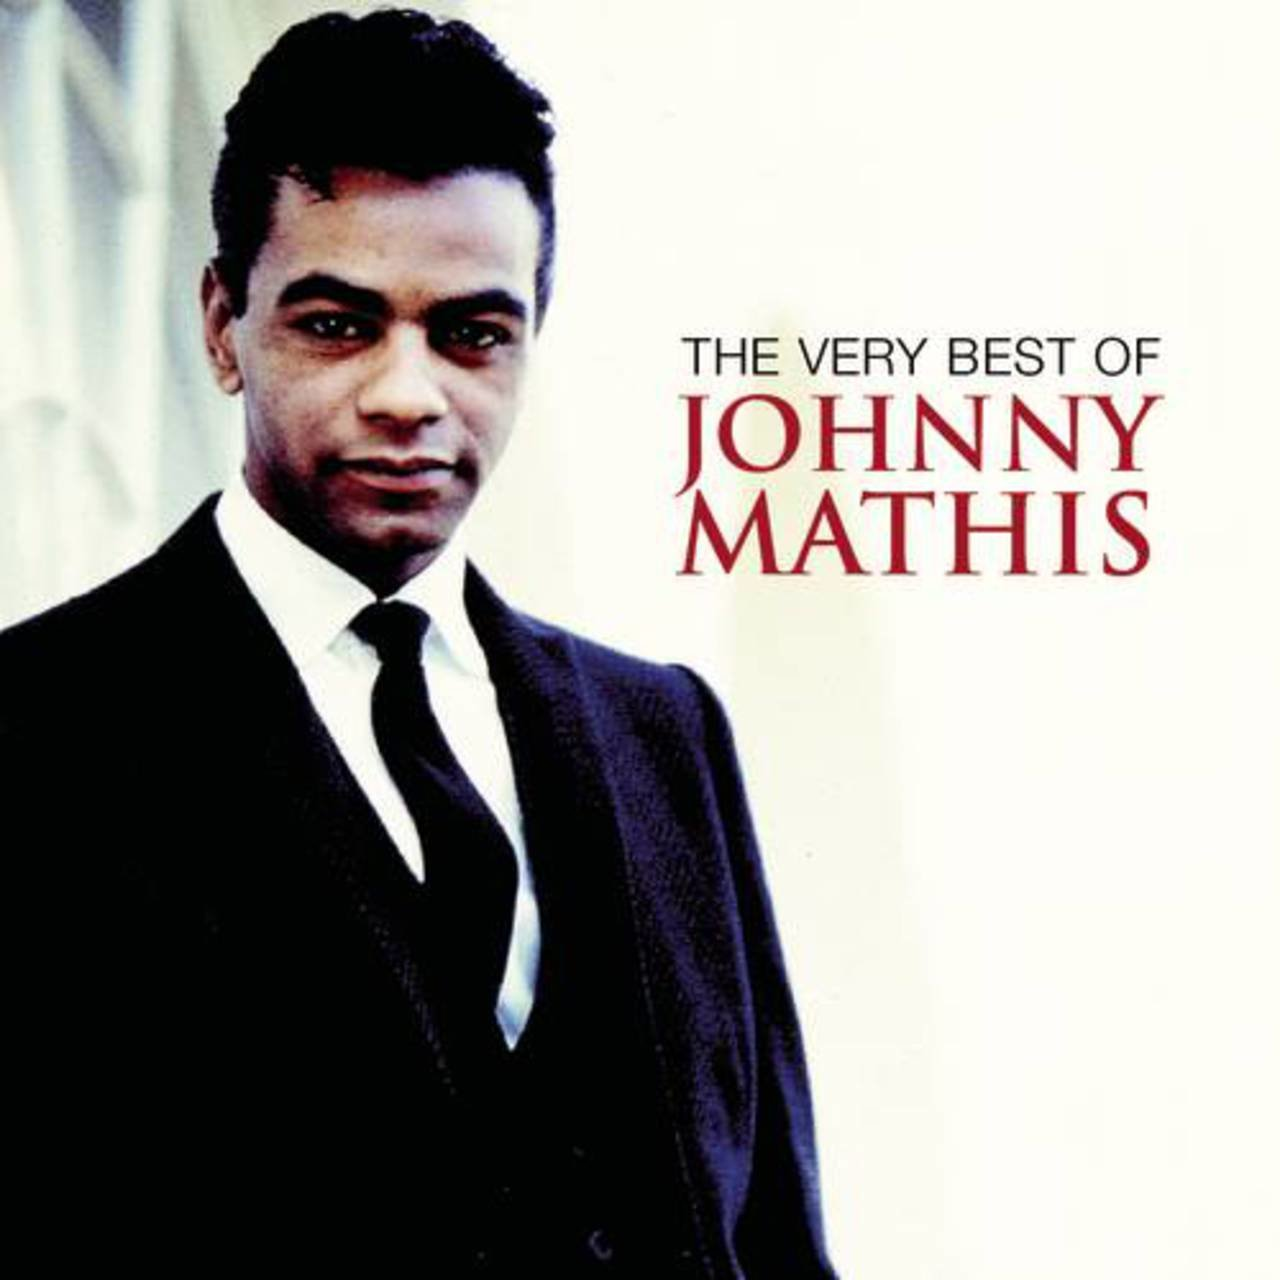 TIDAL: Listen to The Very Best Of Johnny Mathis on TIDAL